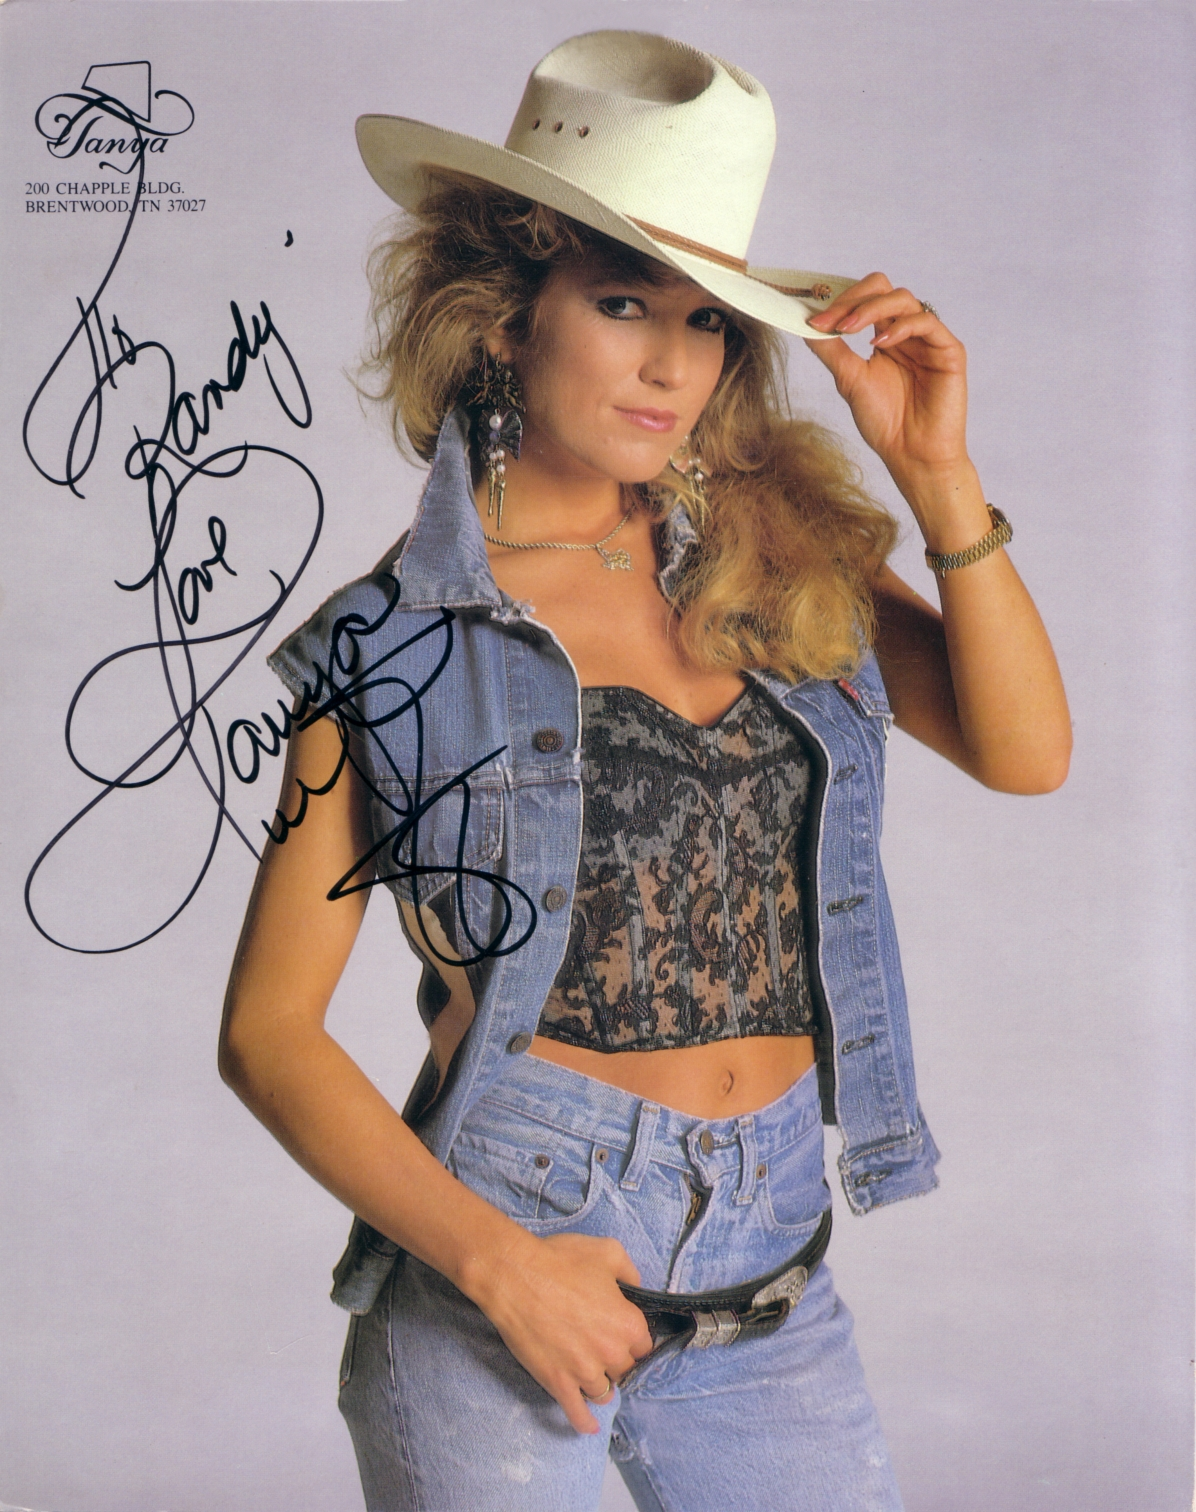 pdx retro blog archive singer tanya tucker is 57 today